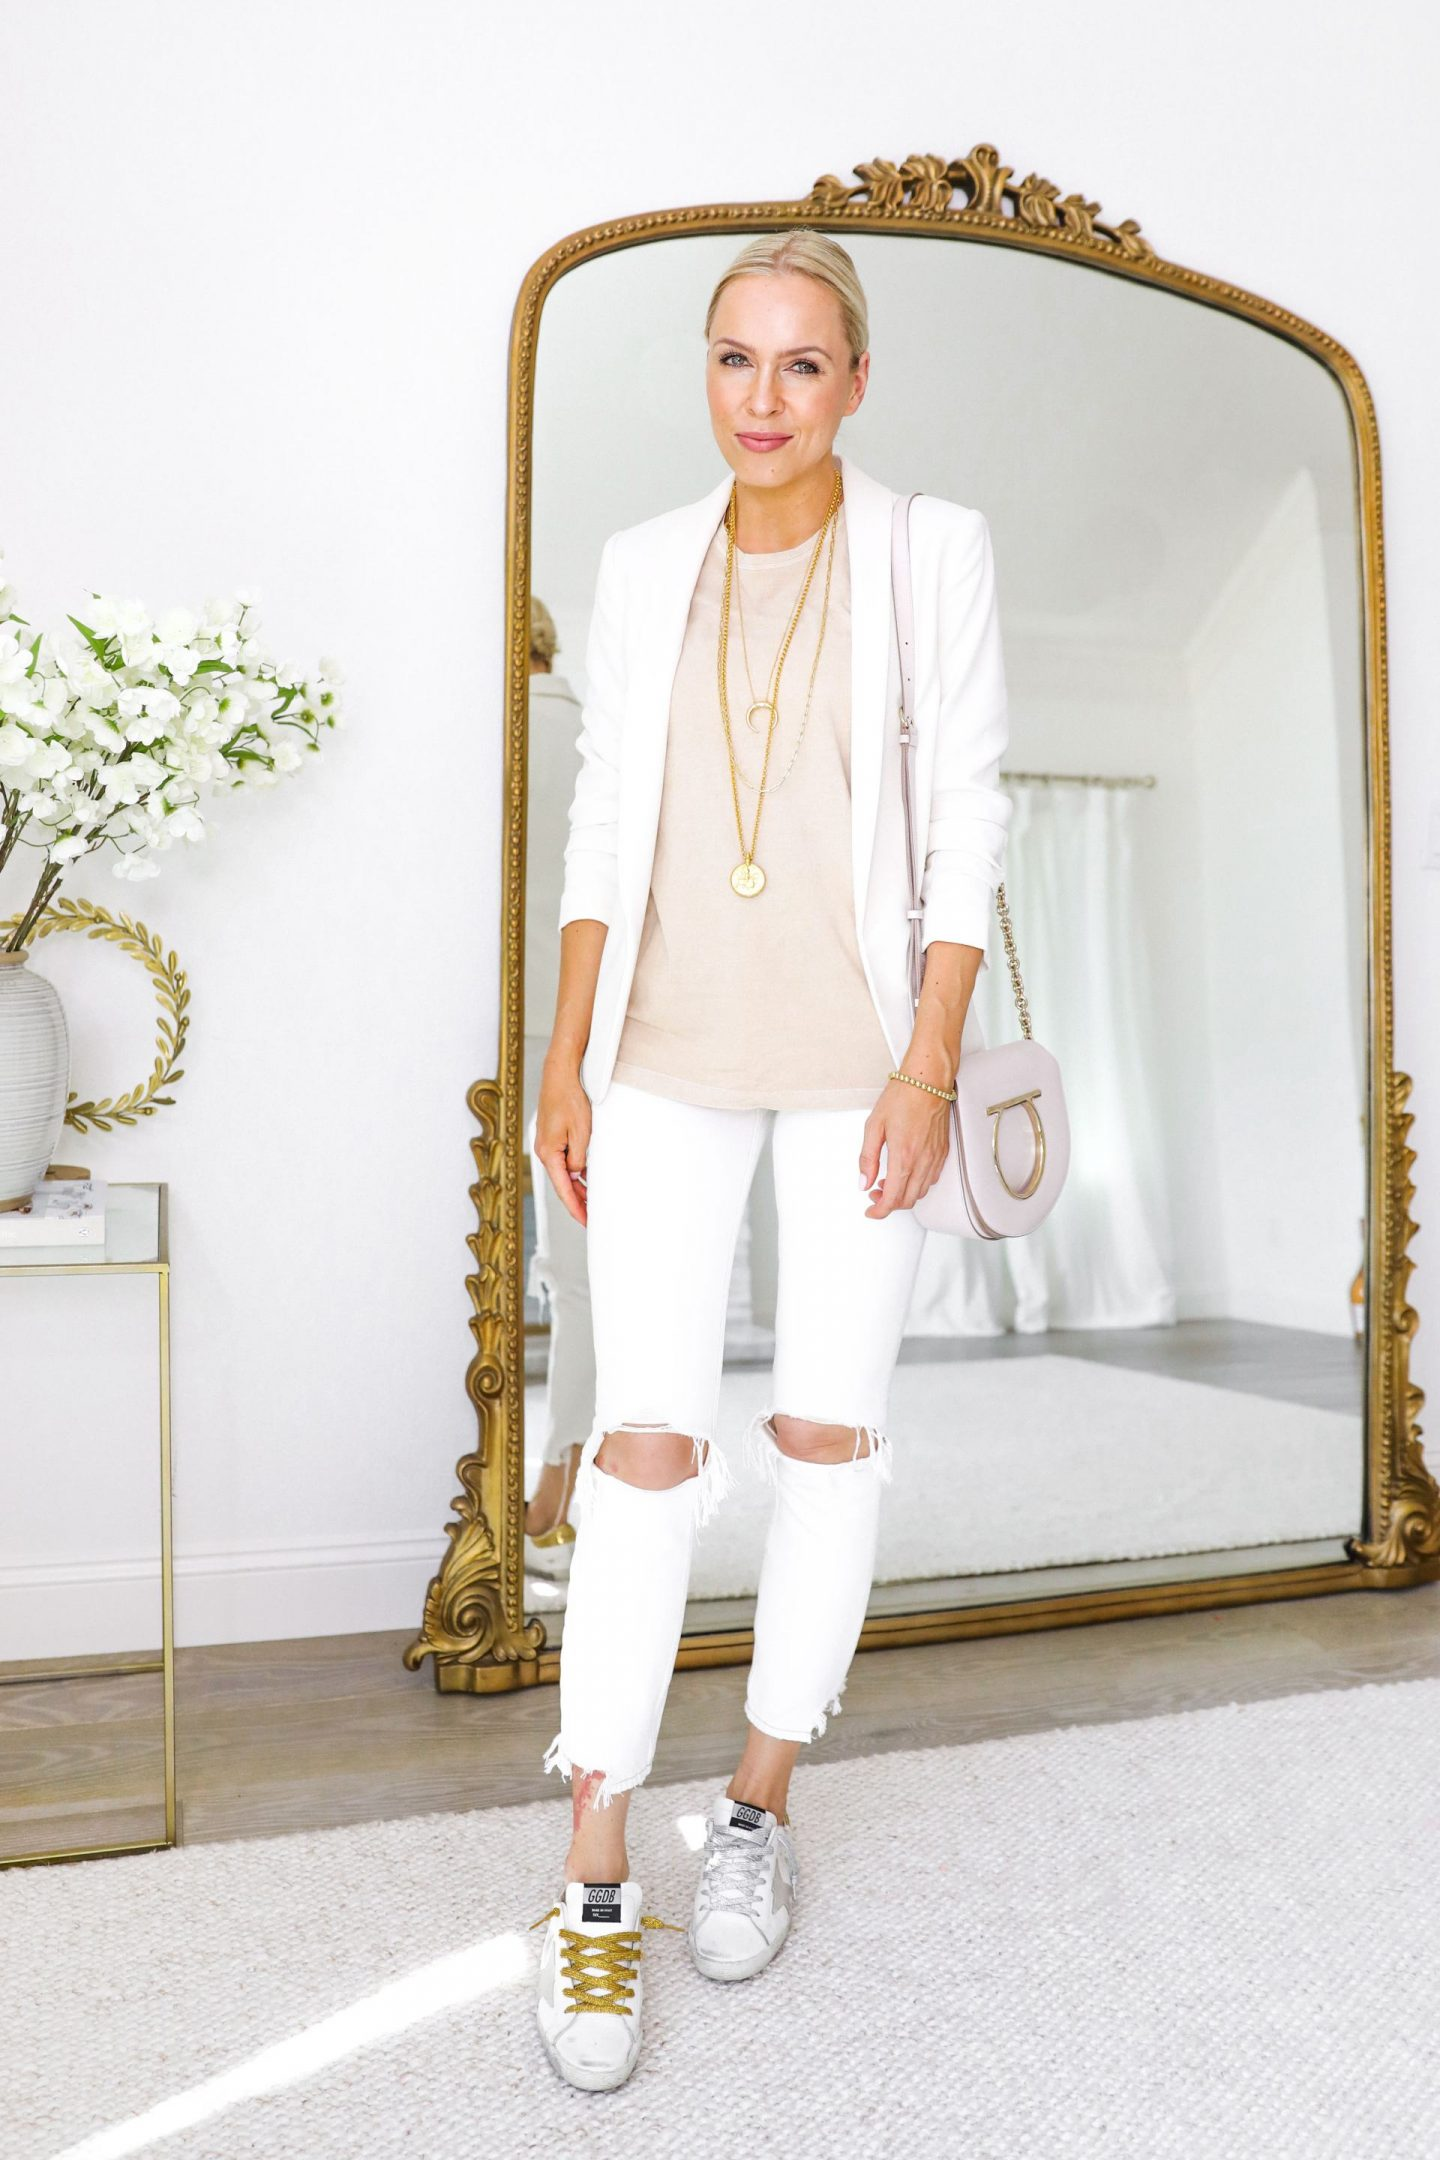 Wearing white jeans and styling them in the summertime